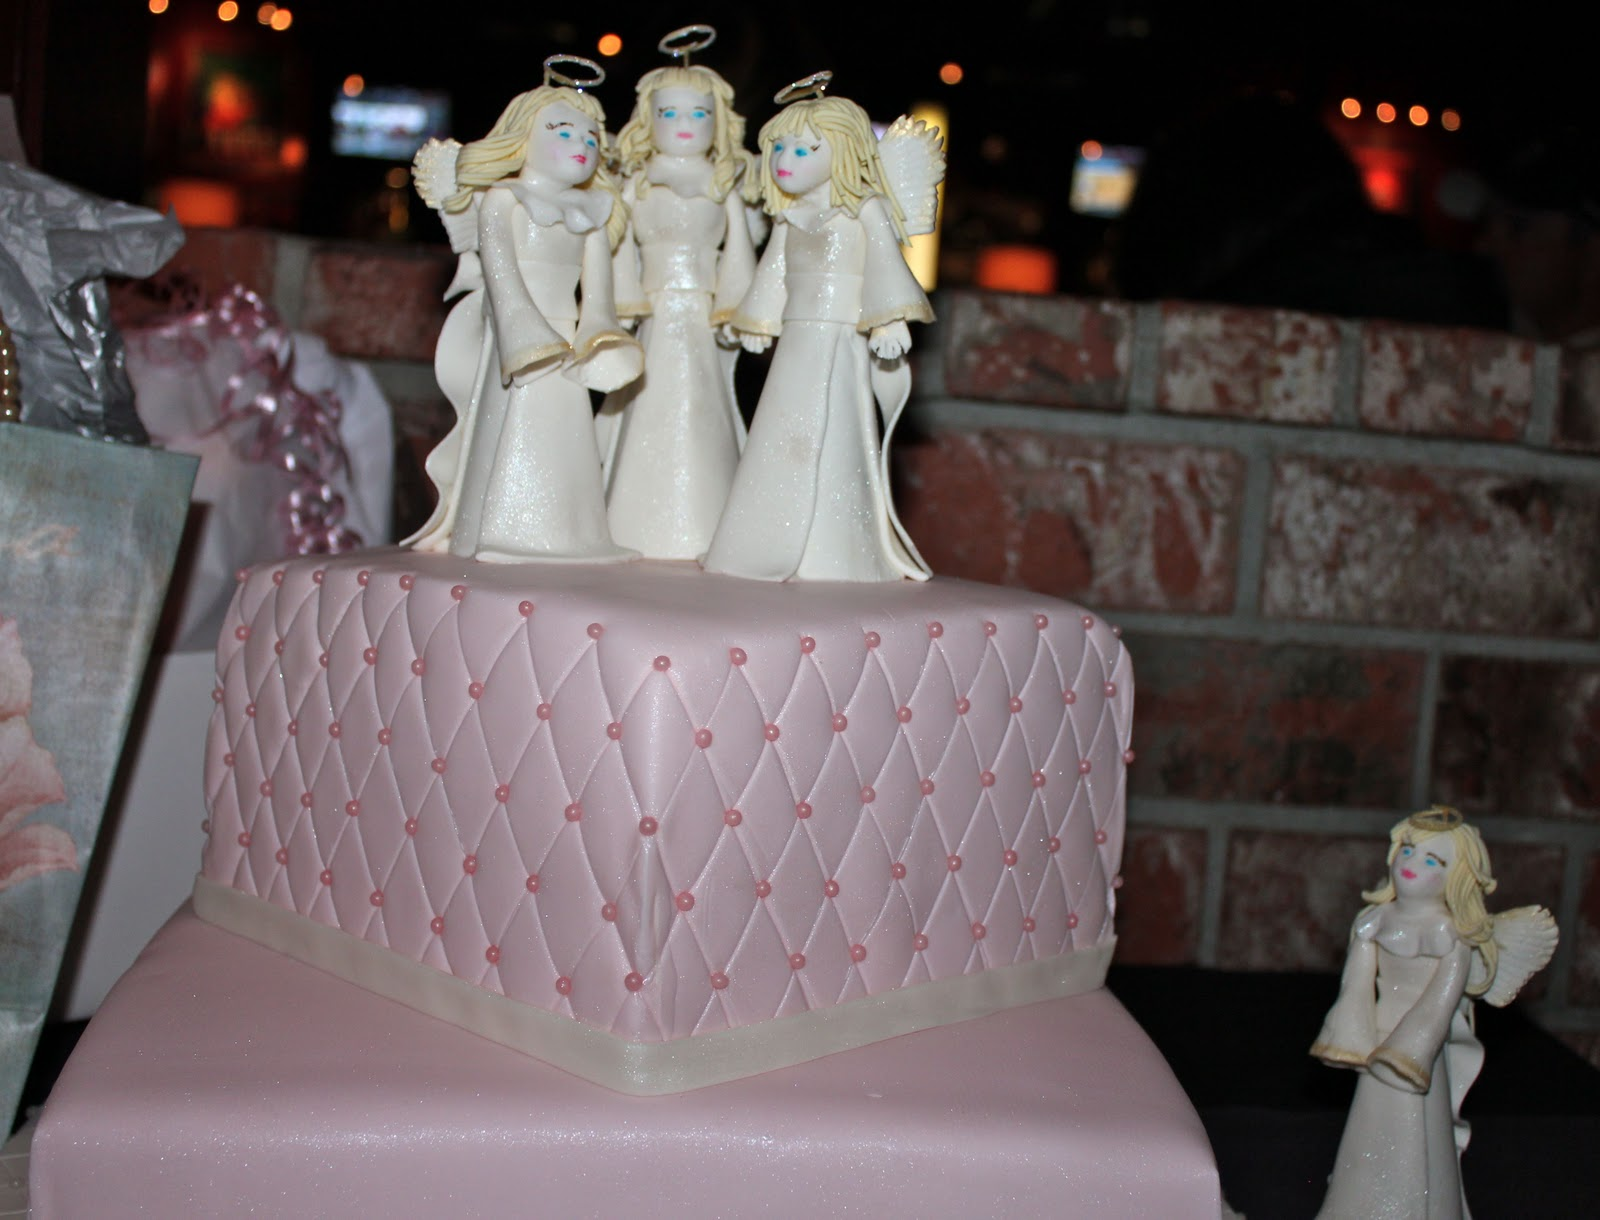 made this cake for my friend's daughter's baptism. Yes, those ...